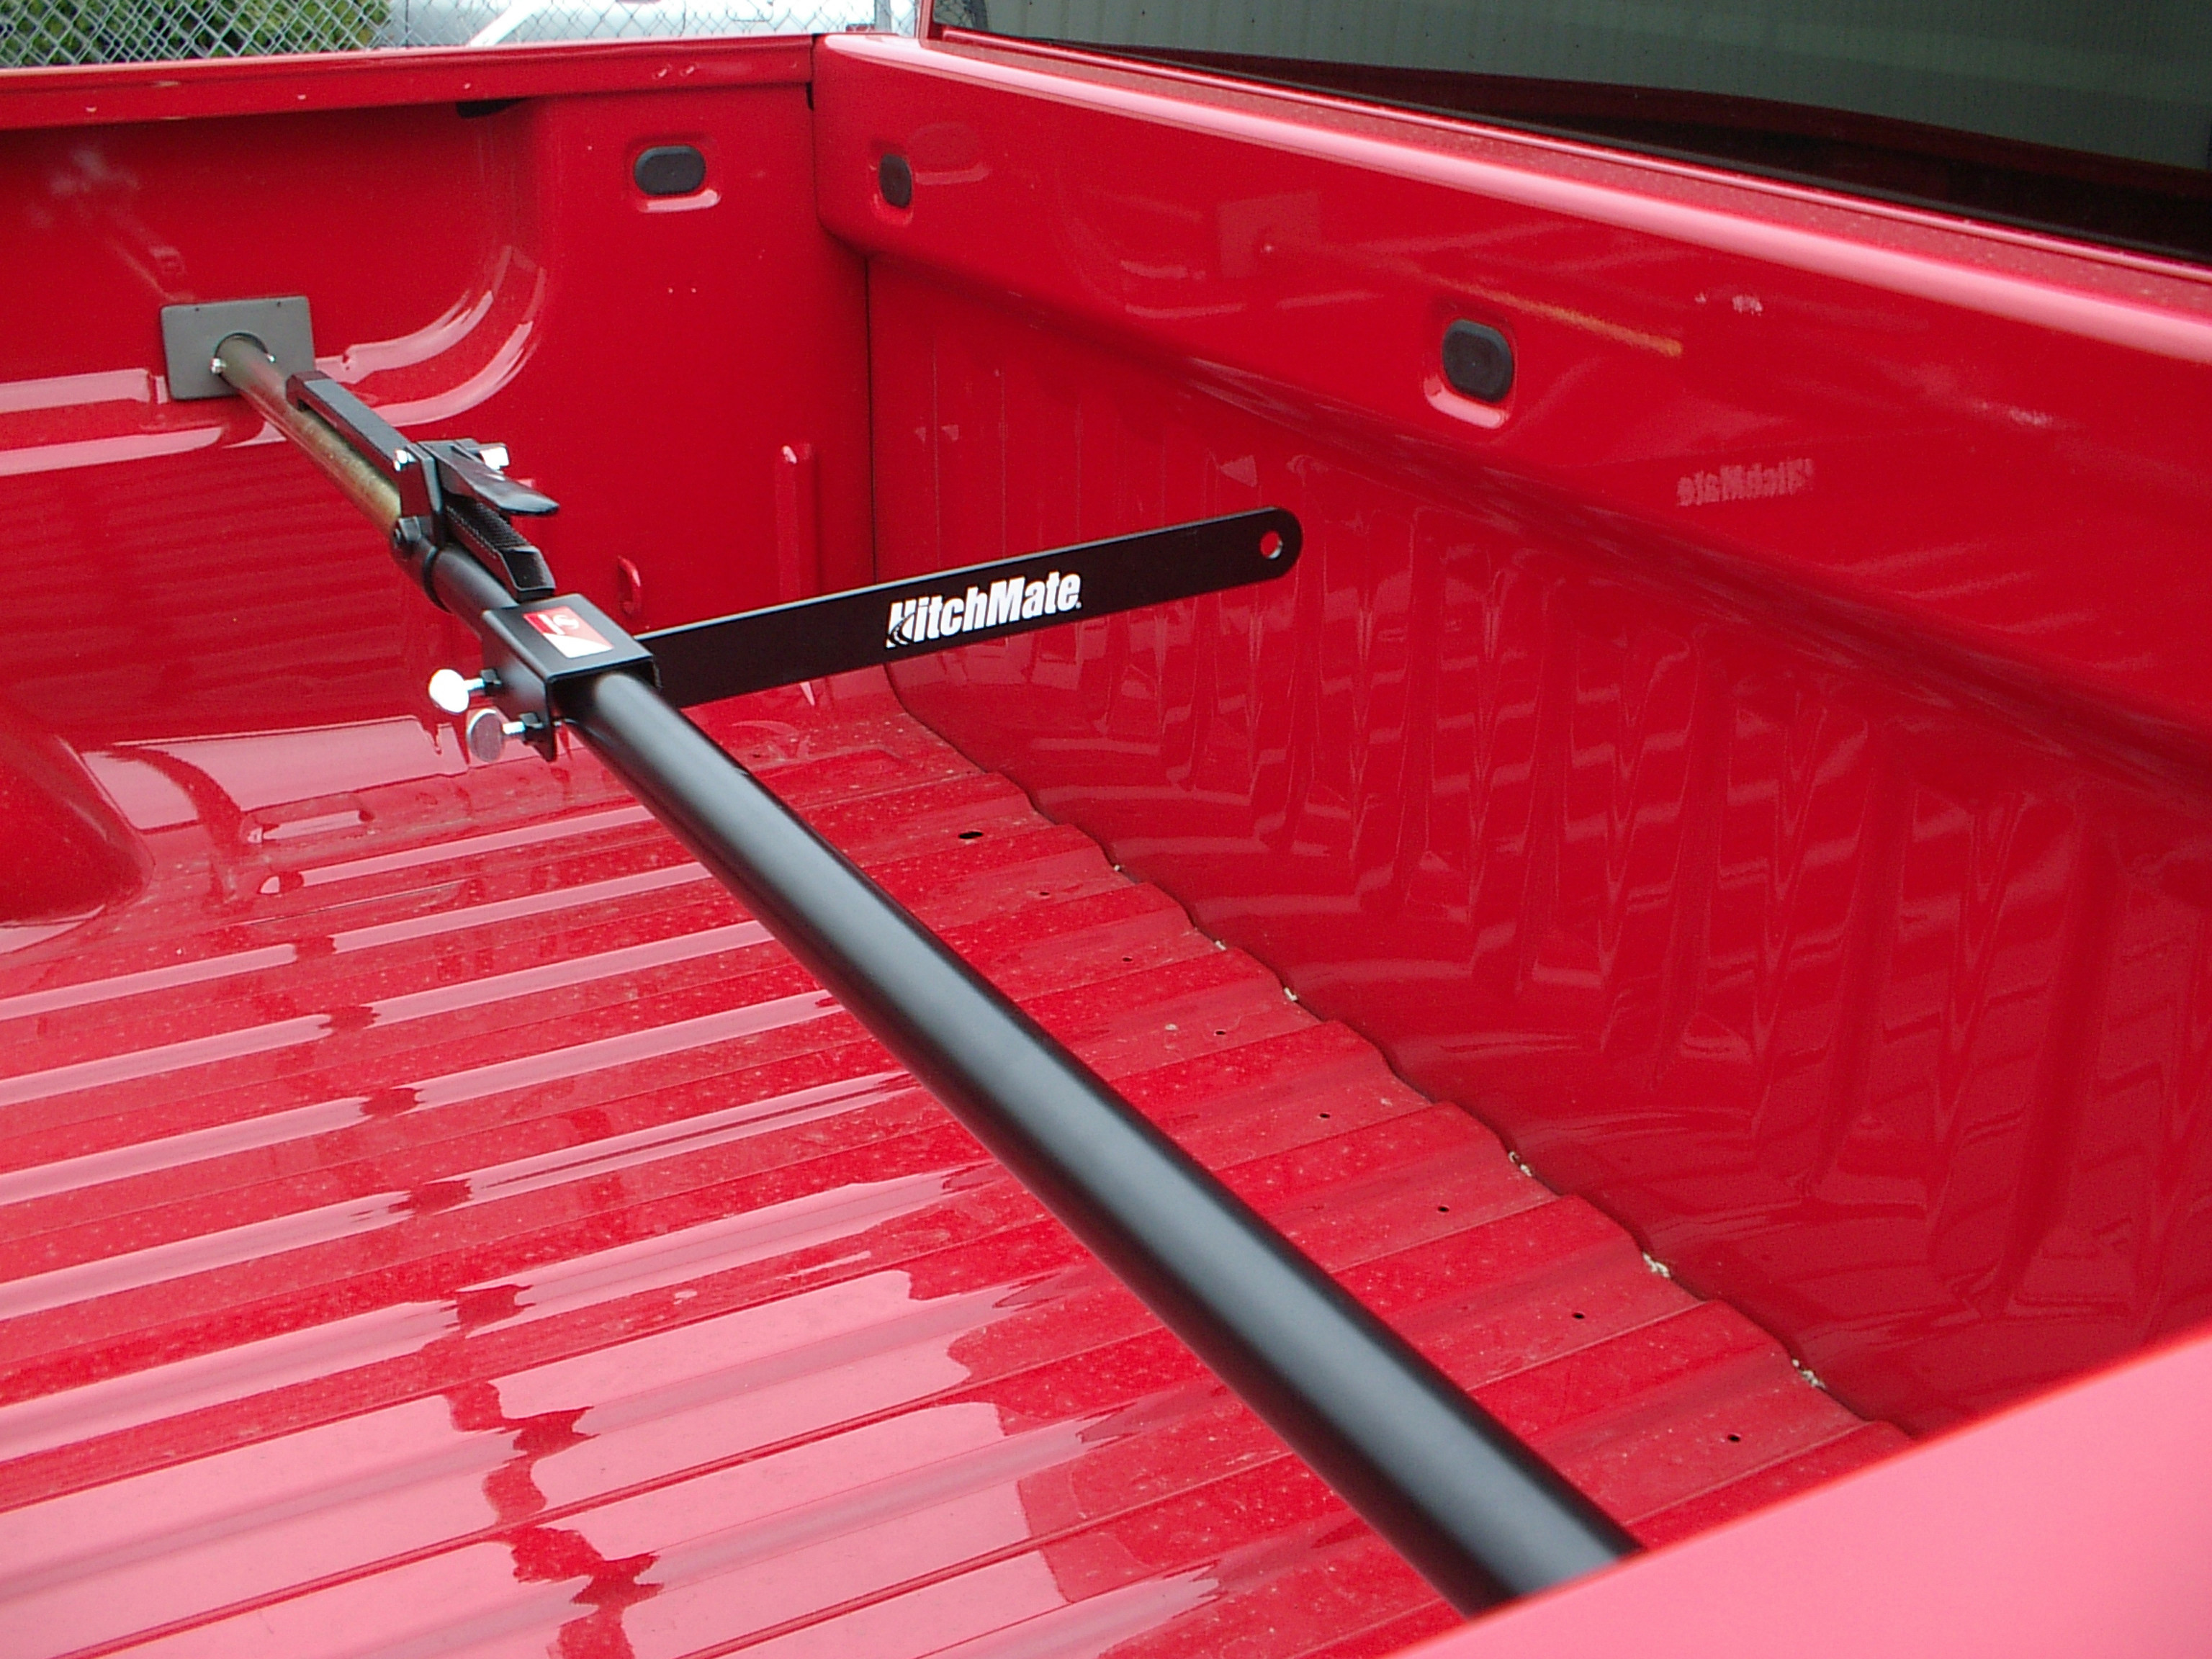 hitchmate cargo stabilizer bar with optional divider bar and cargo bag